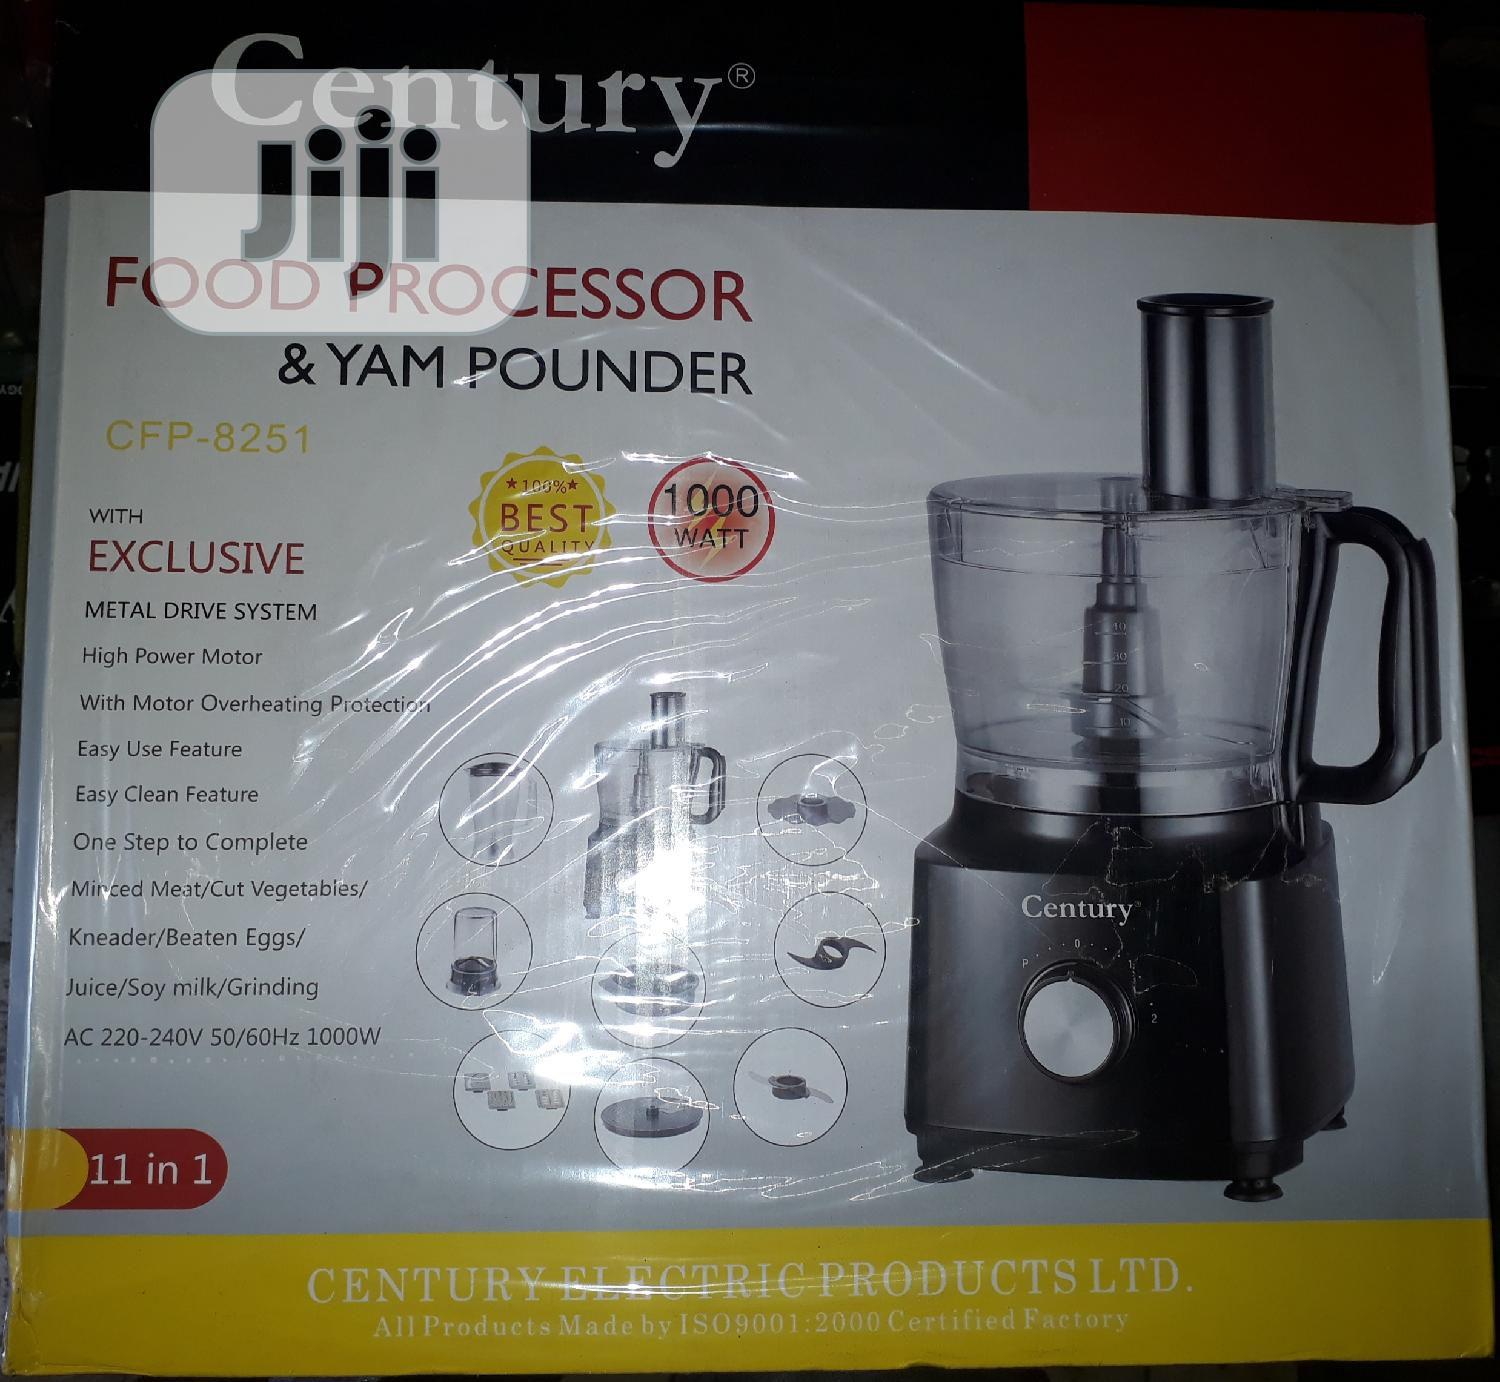 Century Food Processor & Yam Pounder